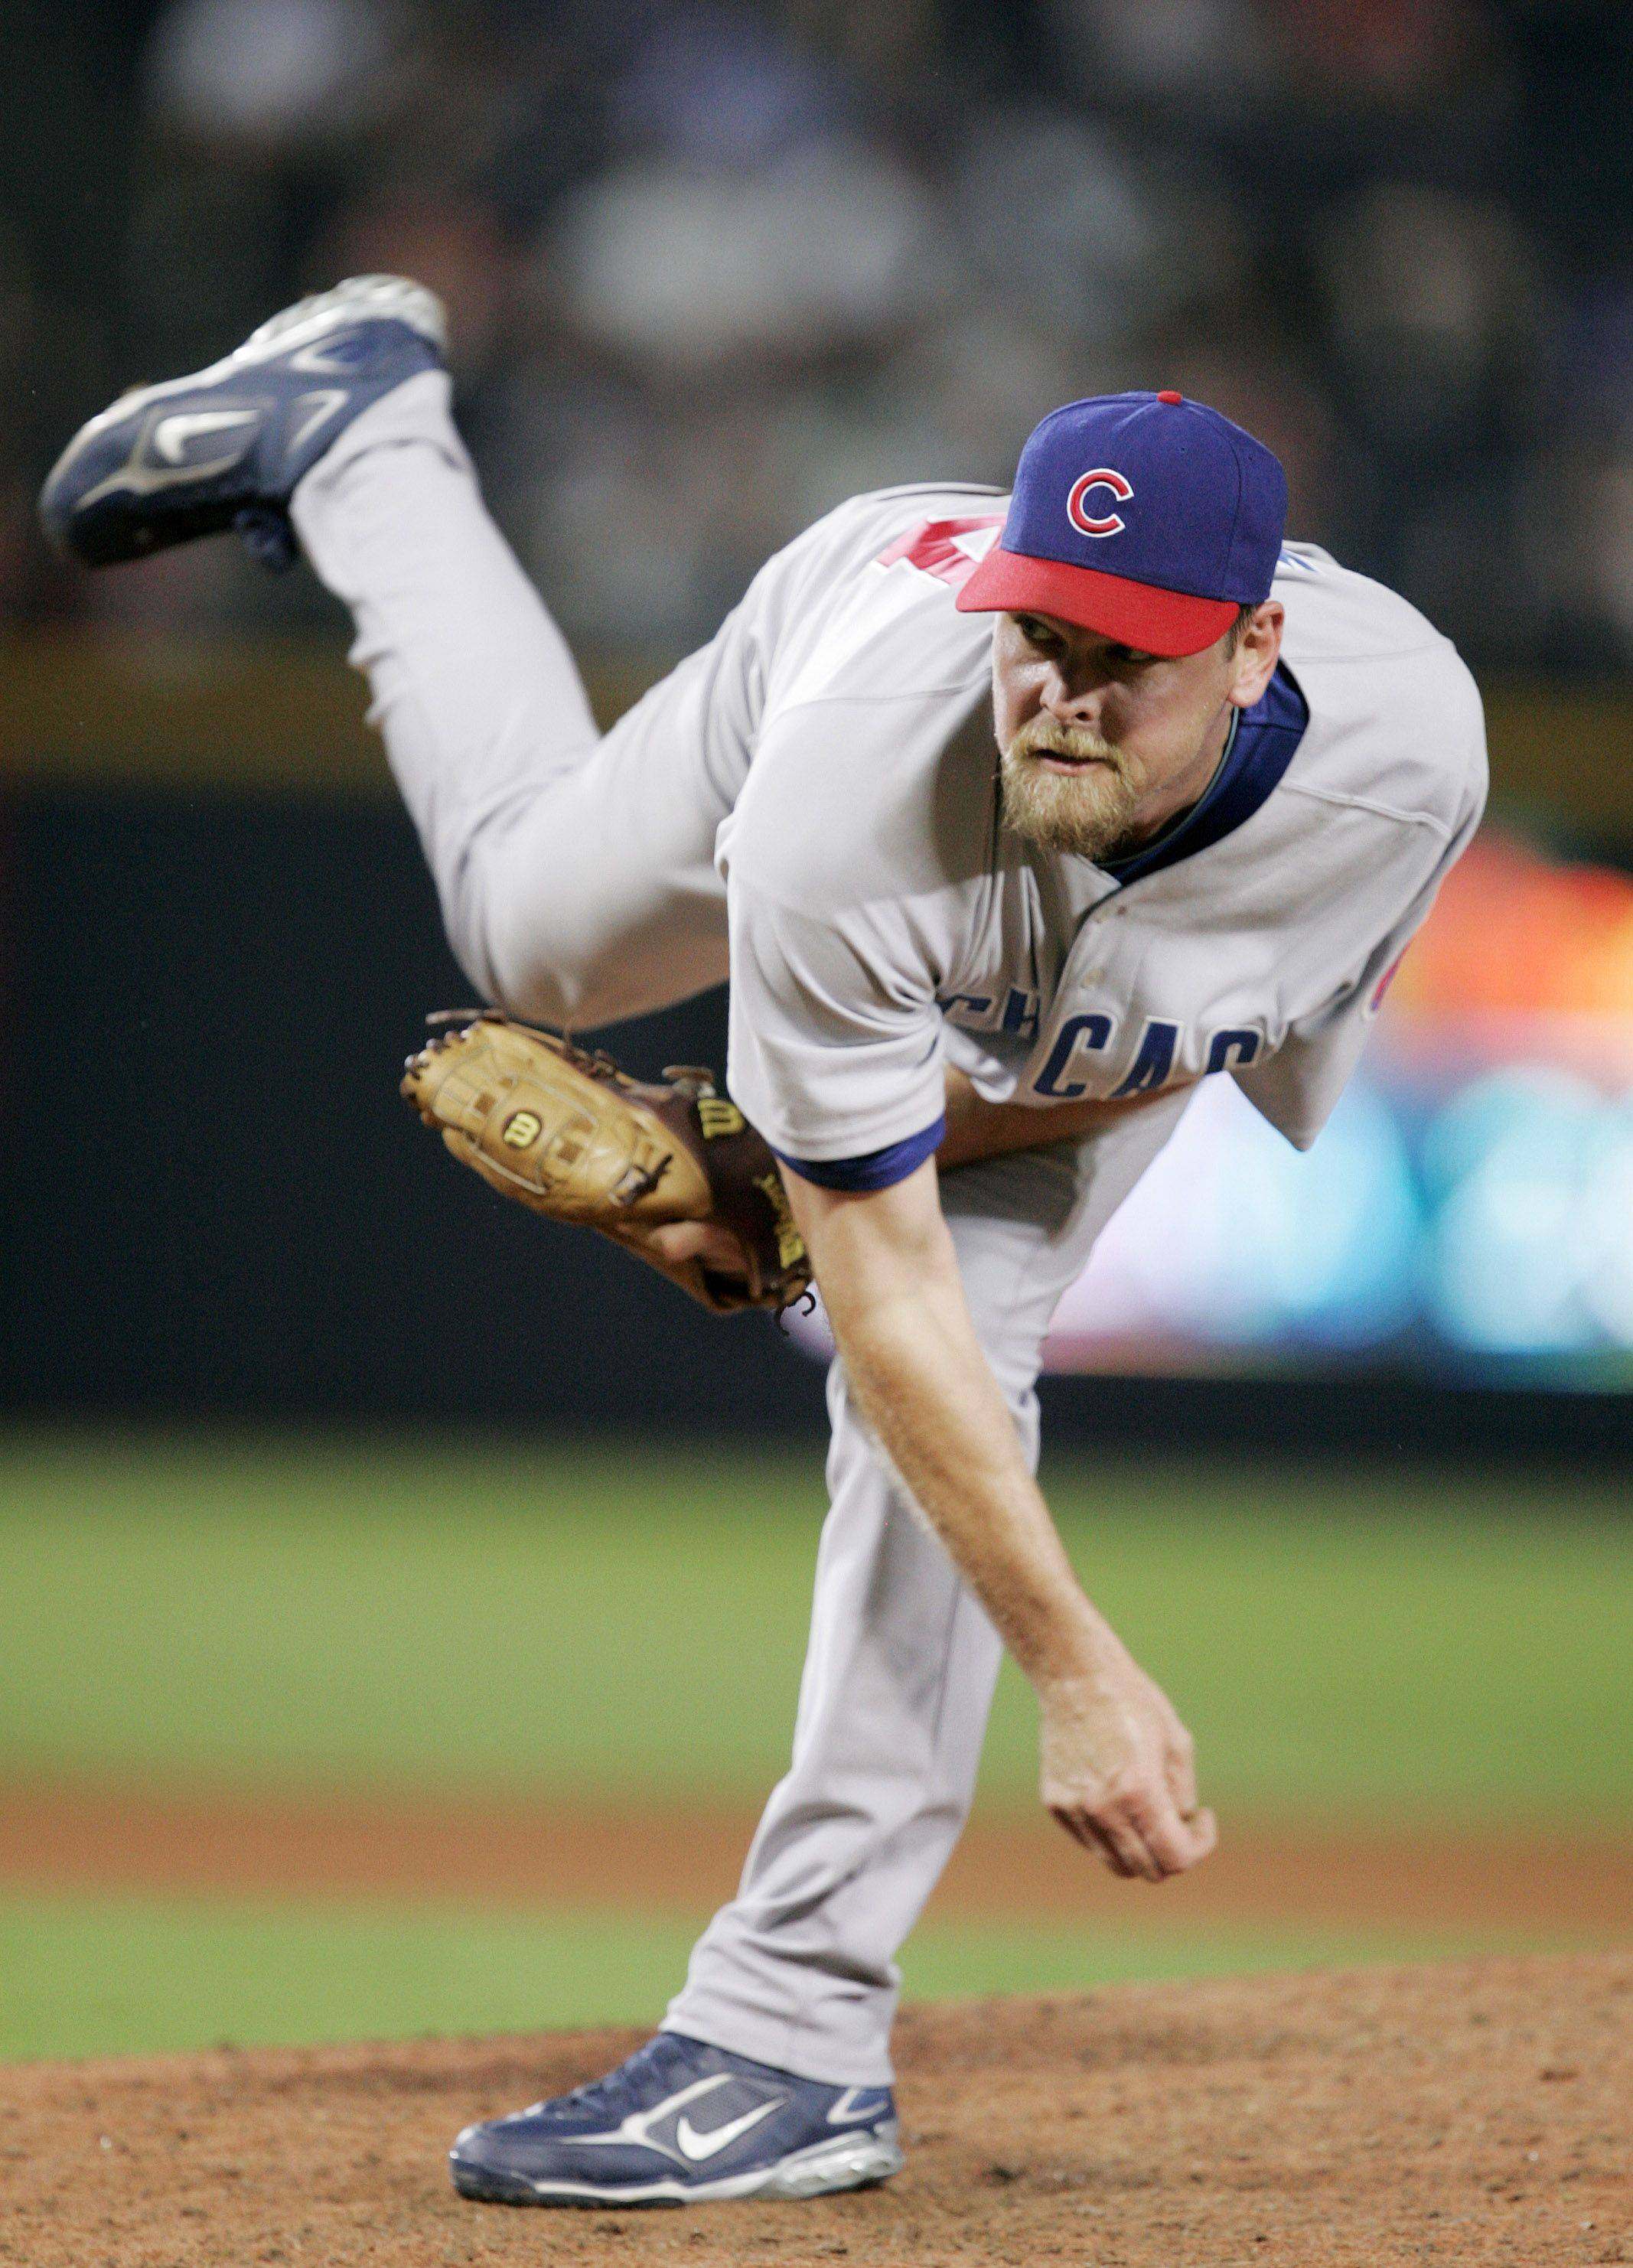 In this Aug. 13, 2008 file photo, Chicago Cubs pitcher Kerry Wood throws against the Atlanta Braves in the eighth inning of a baseball game in Atlanta.